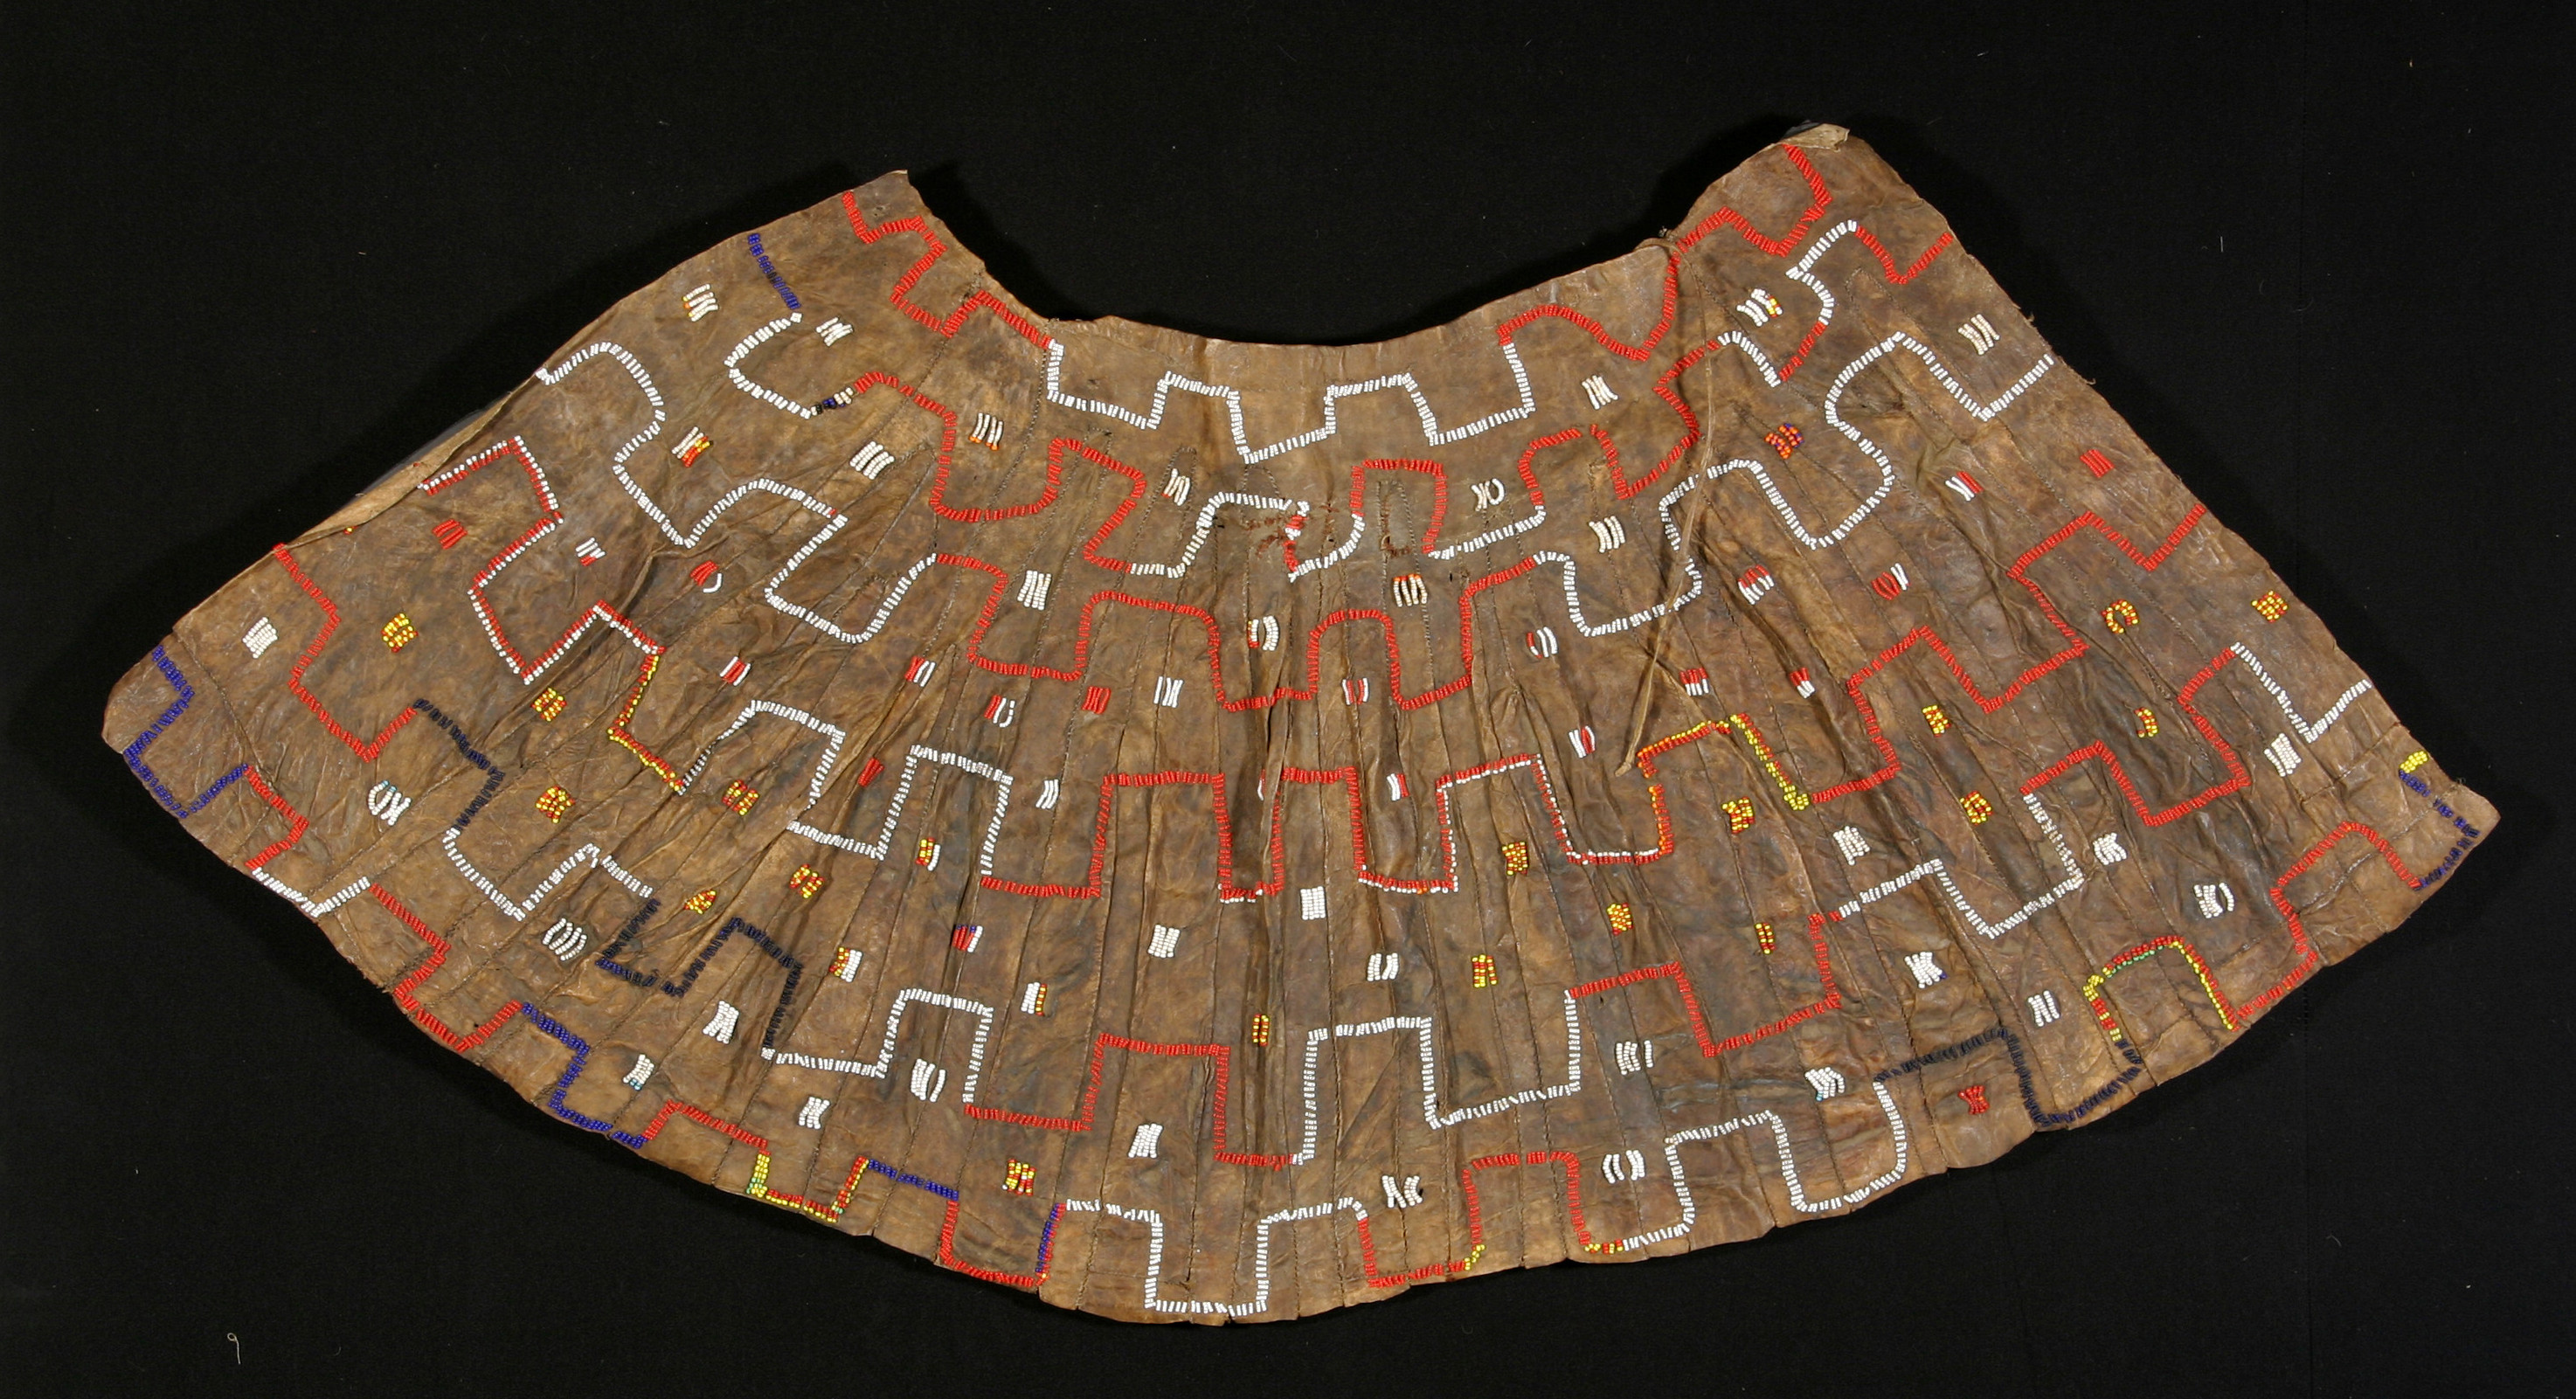 "Iraqwa skirt, north Tanzania, early 20th century. Glass beads on leather; 31"" x60"". These types of skirts were made by Iraqwa girls as part of their 'marmo' (seclusion) initiation ritual. This ritual was abolished by the colonial appointed chief in the 1930's."